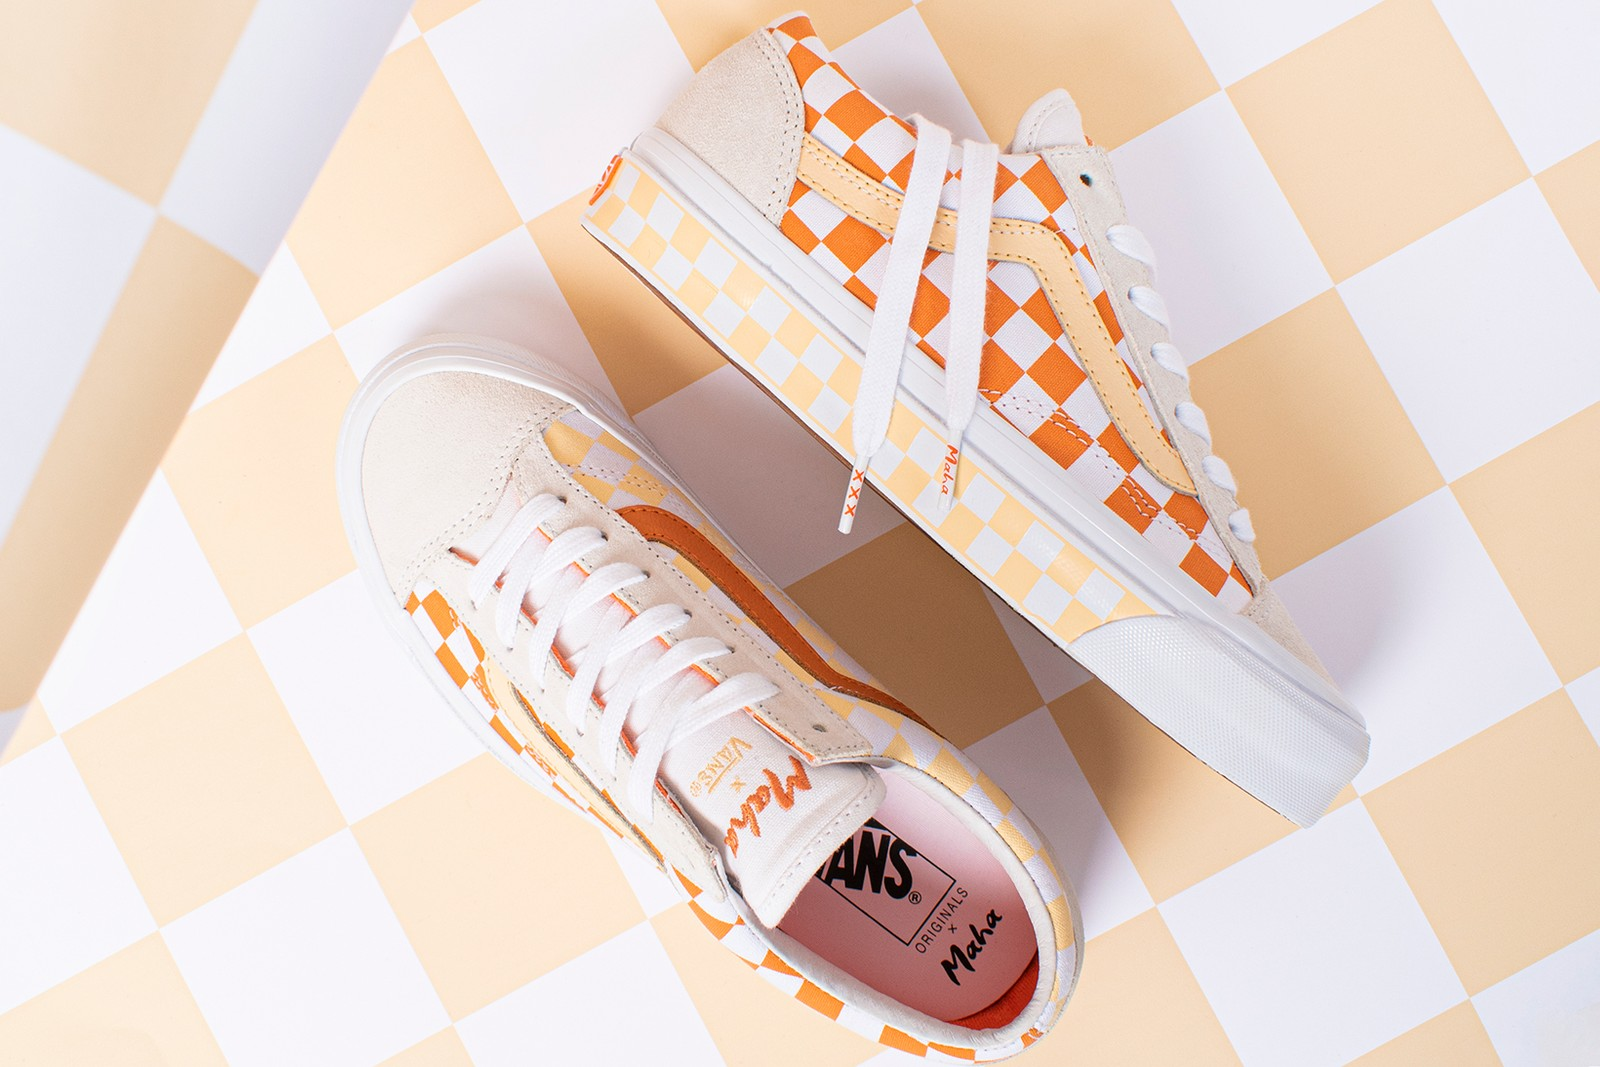 maha amsterdam vault by vans collaboration og style 36 lx sneakers orange yellow white shoes footwear sneakerhead